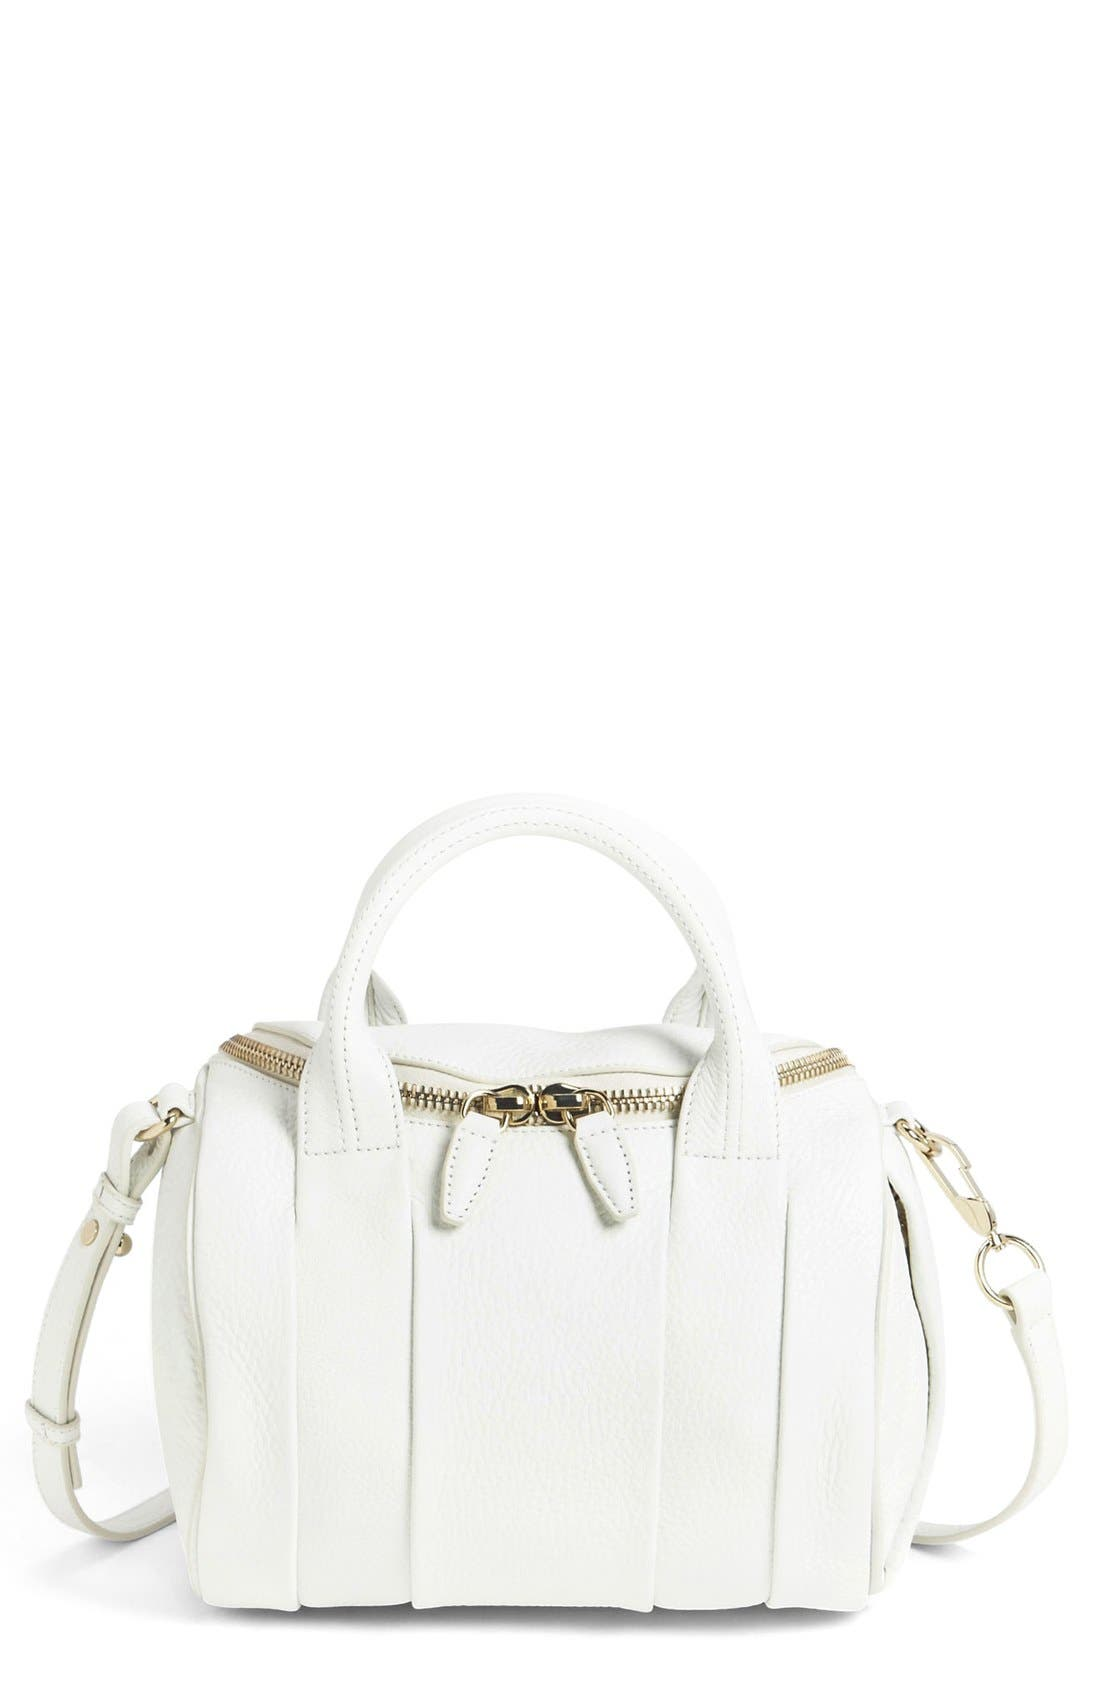 Alternate Image 1 Selected - Alexander Wang 'Rockie - Pale Gold' Leather Crossbody Satchel